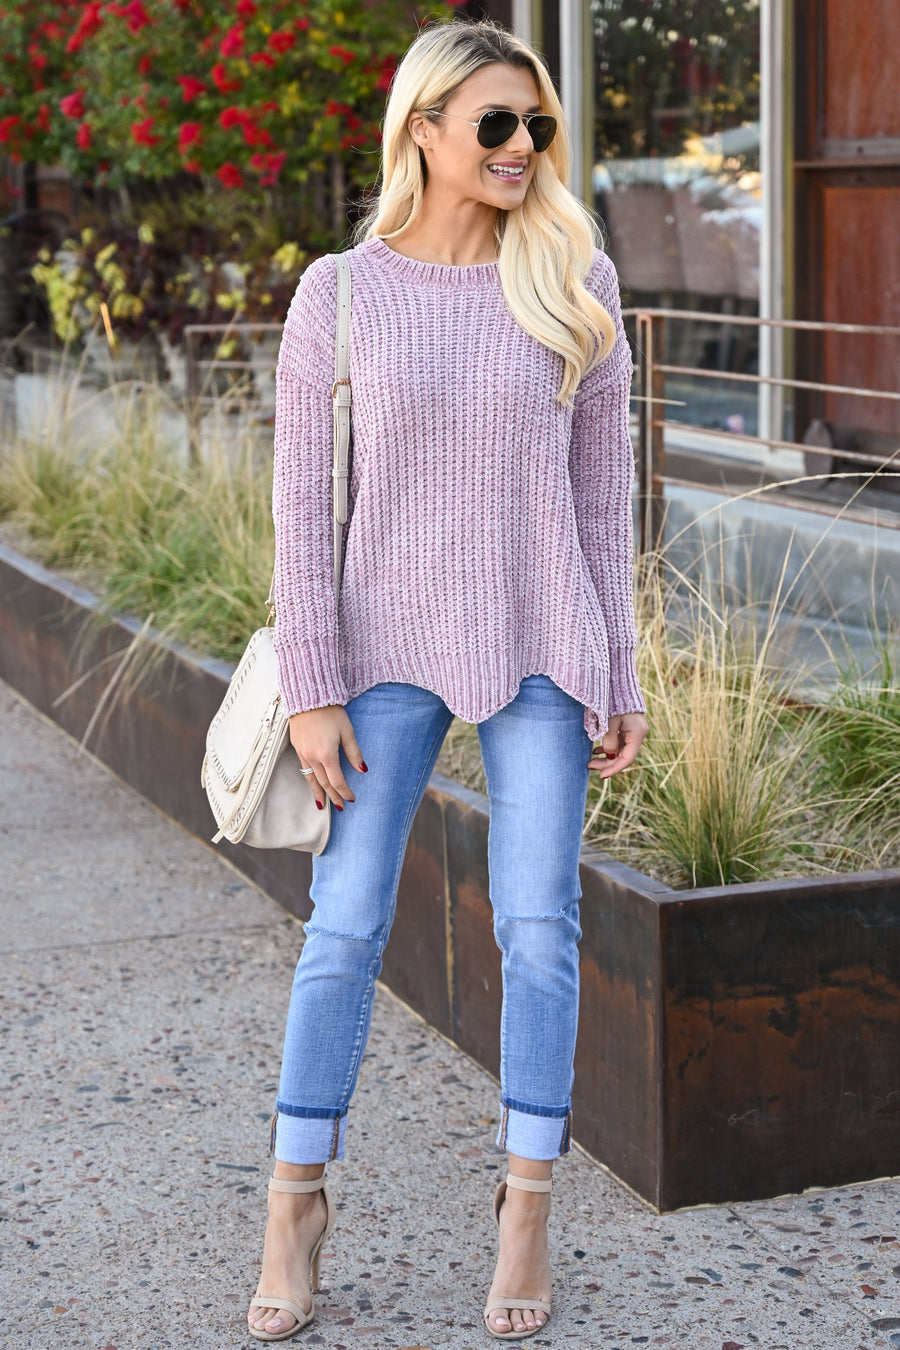 Your Only Love Sweater - Lavender women's super soft scalloped hem top, Closet Candy Boutique 1